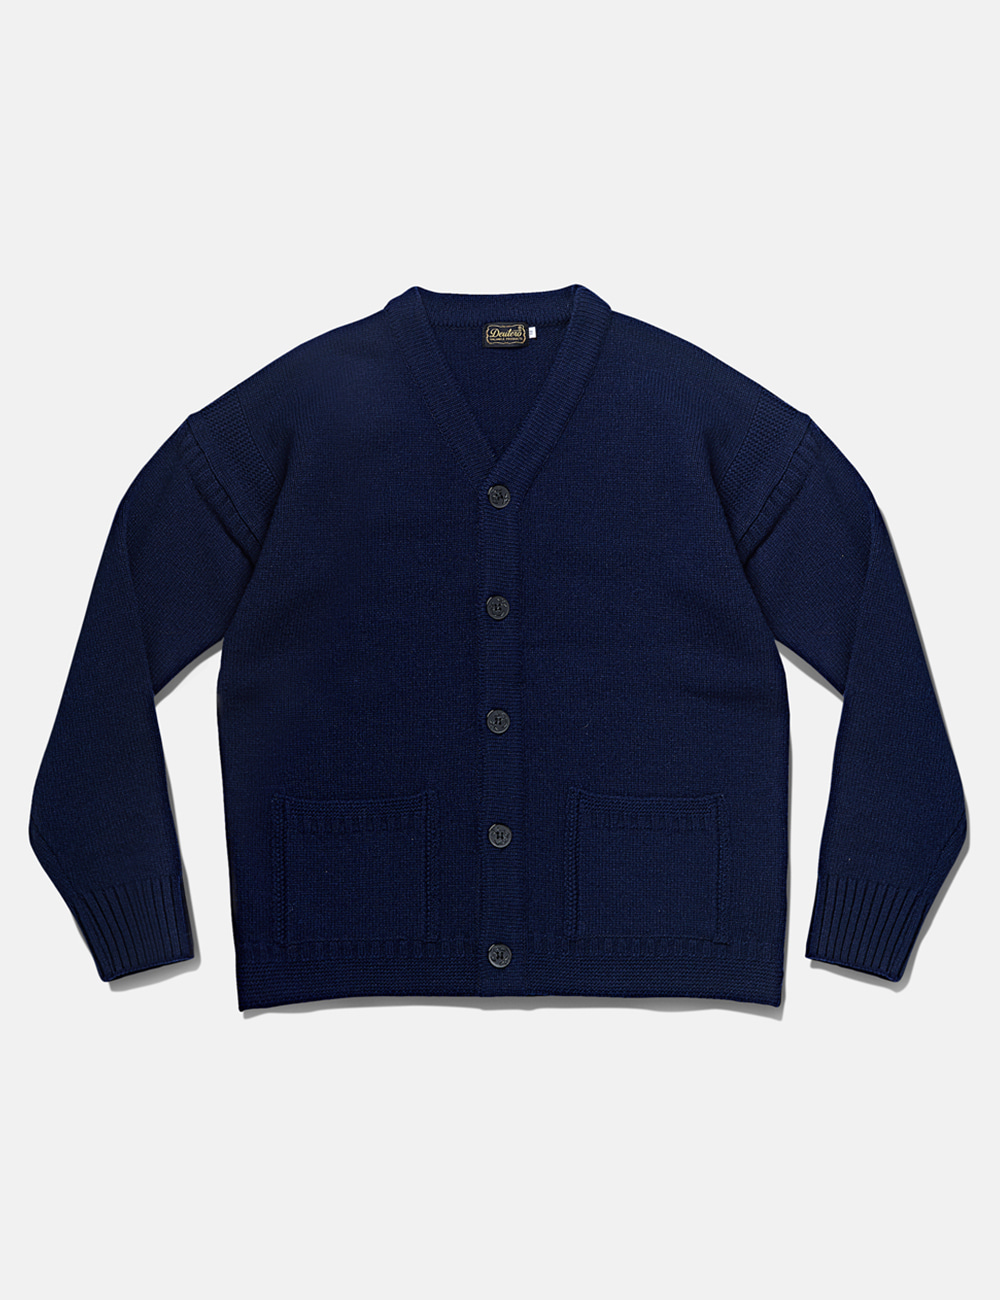 [DEUTERO] DTR1944 University Cardigan Navy